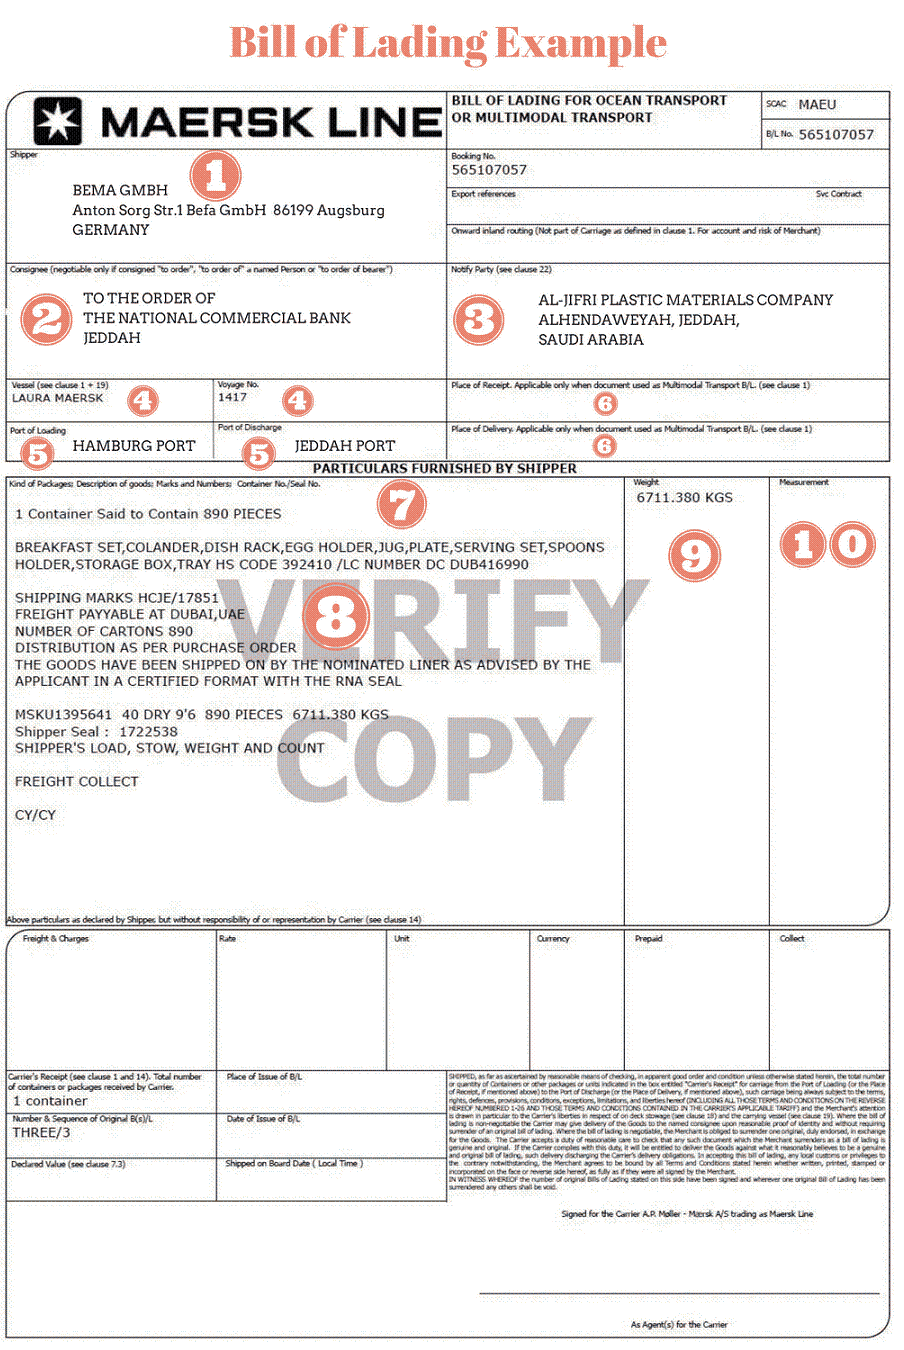 bill of lading preparation guide